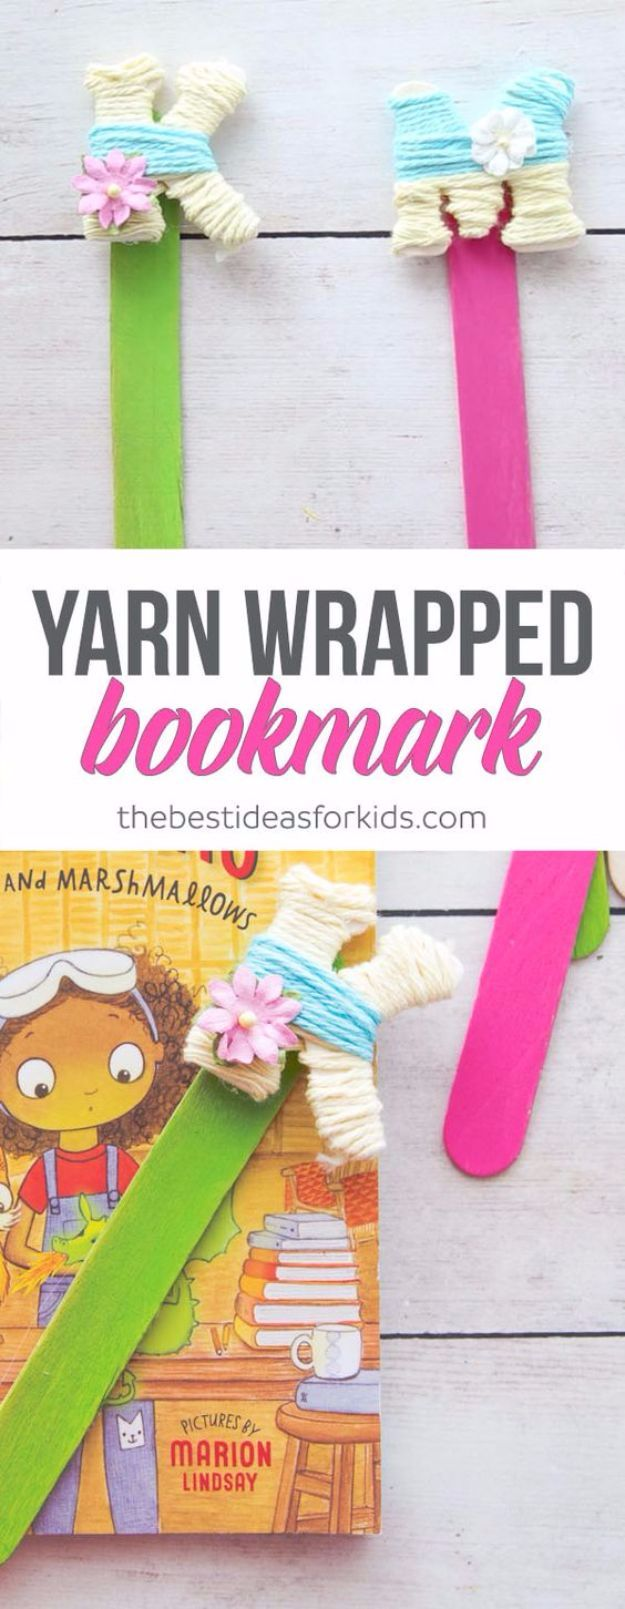 DIY Ideas With Yarn and Best Yarn Crafts - Yarn Wrapped Letter Bookmarks - Wall Hangings, Easy Dream Catchers, Crochet Ideas for Teens, Adults and Kids - Knitting , No Sew and Weaving Projects Make Awesome Wall Art and Home Decor on A Budget